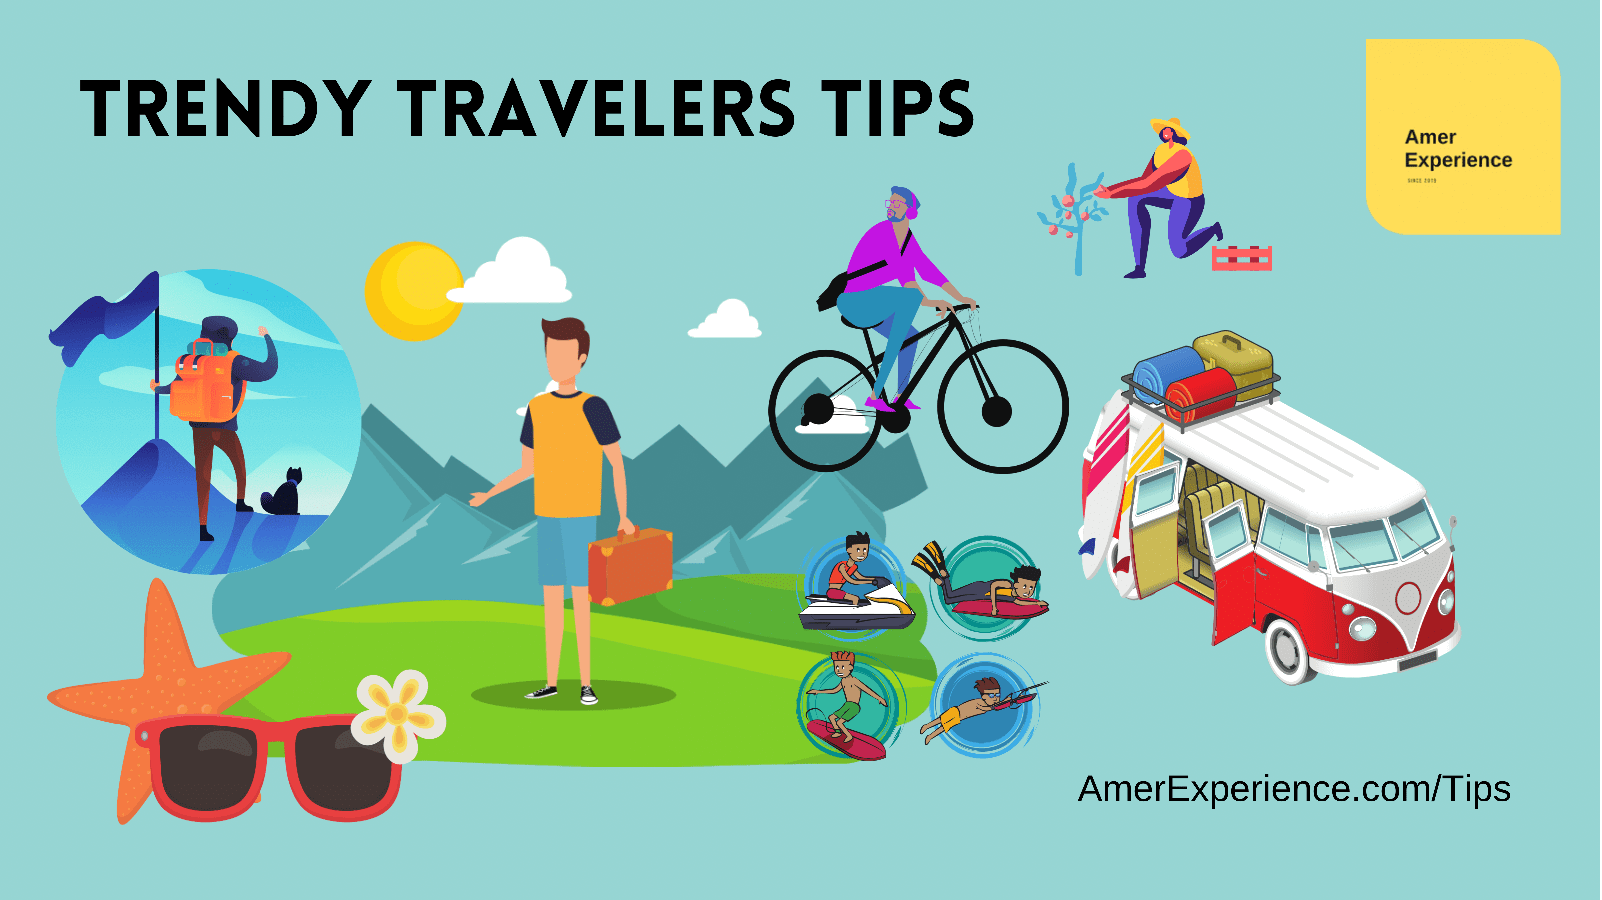 Trendy Travelers Tips Things To Do 5T&D AmerExperience.com